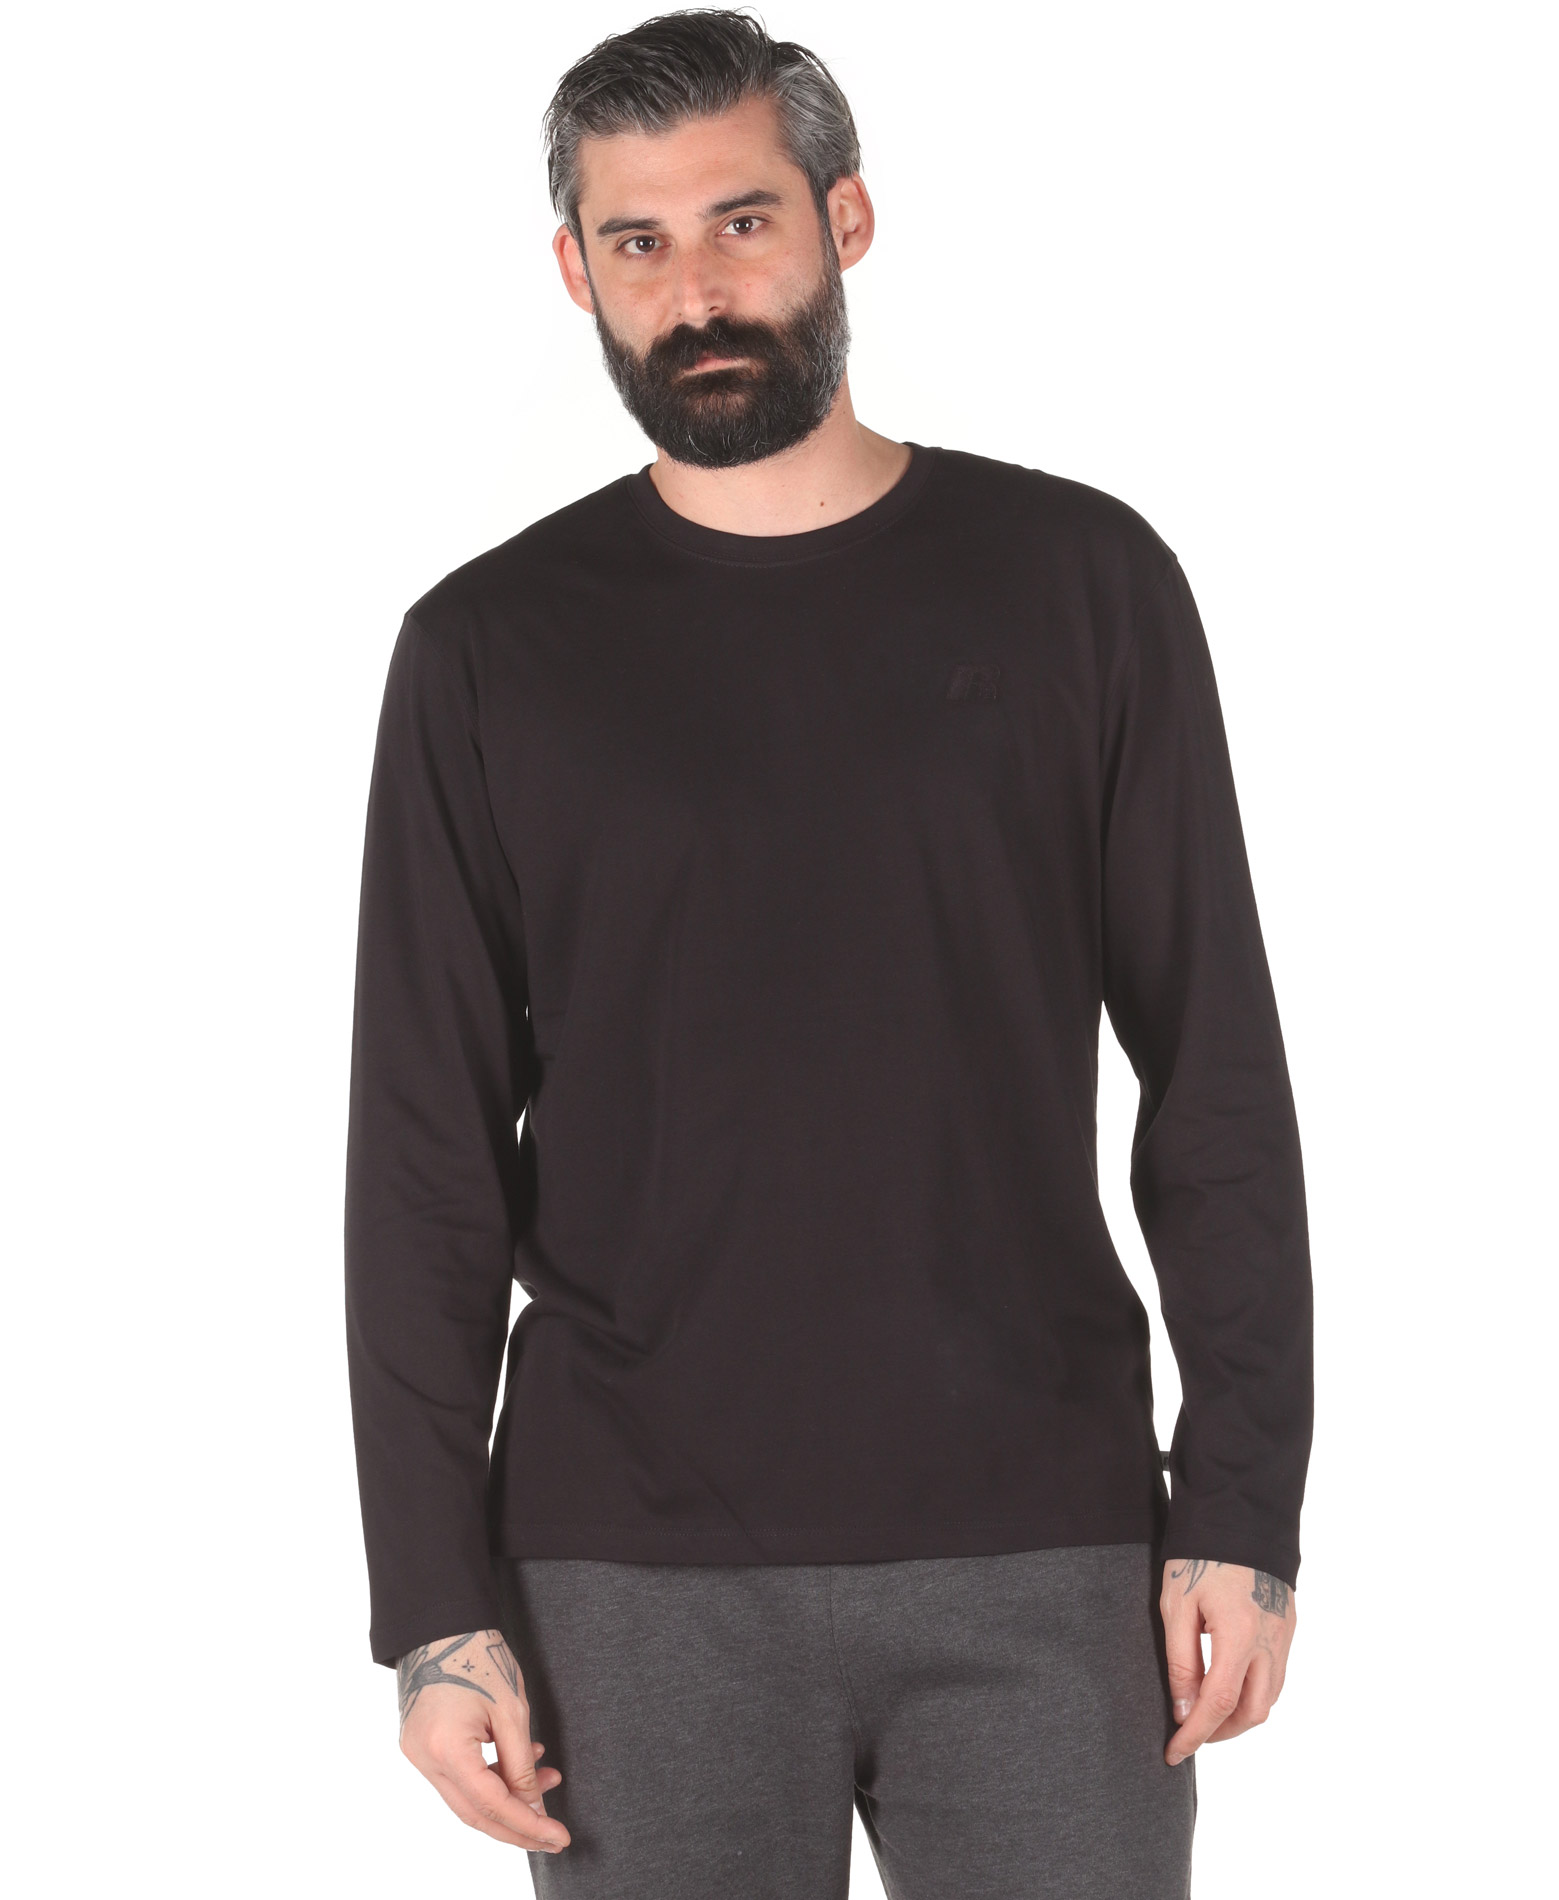 Russell Athletic L/S CREWNECK TEE SHIRT A0-002-2-099 Μαύρο